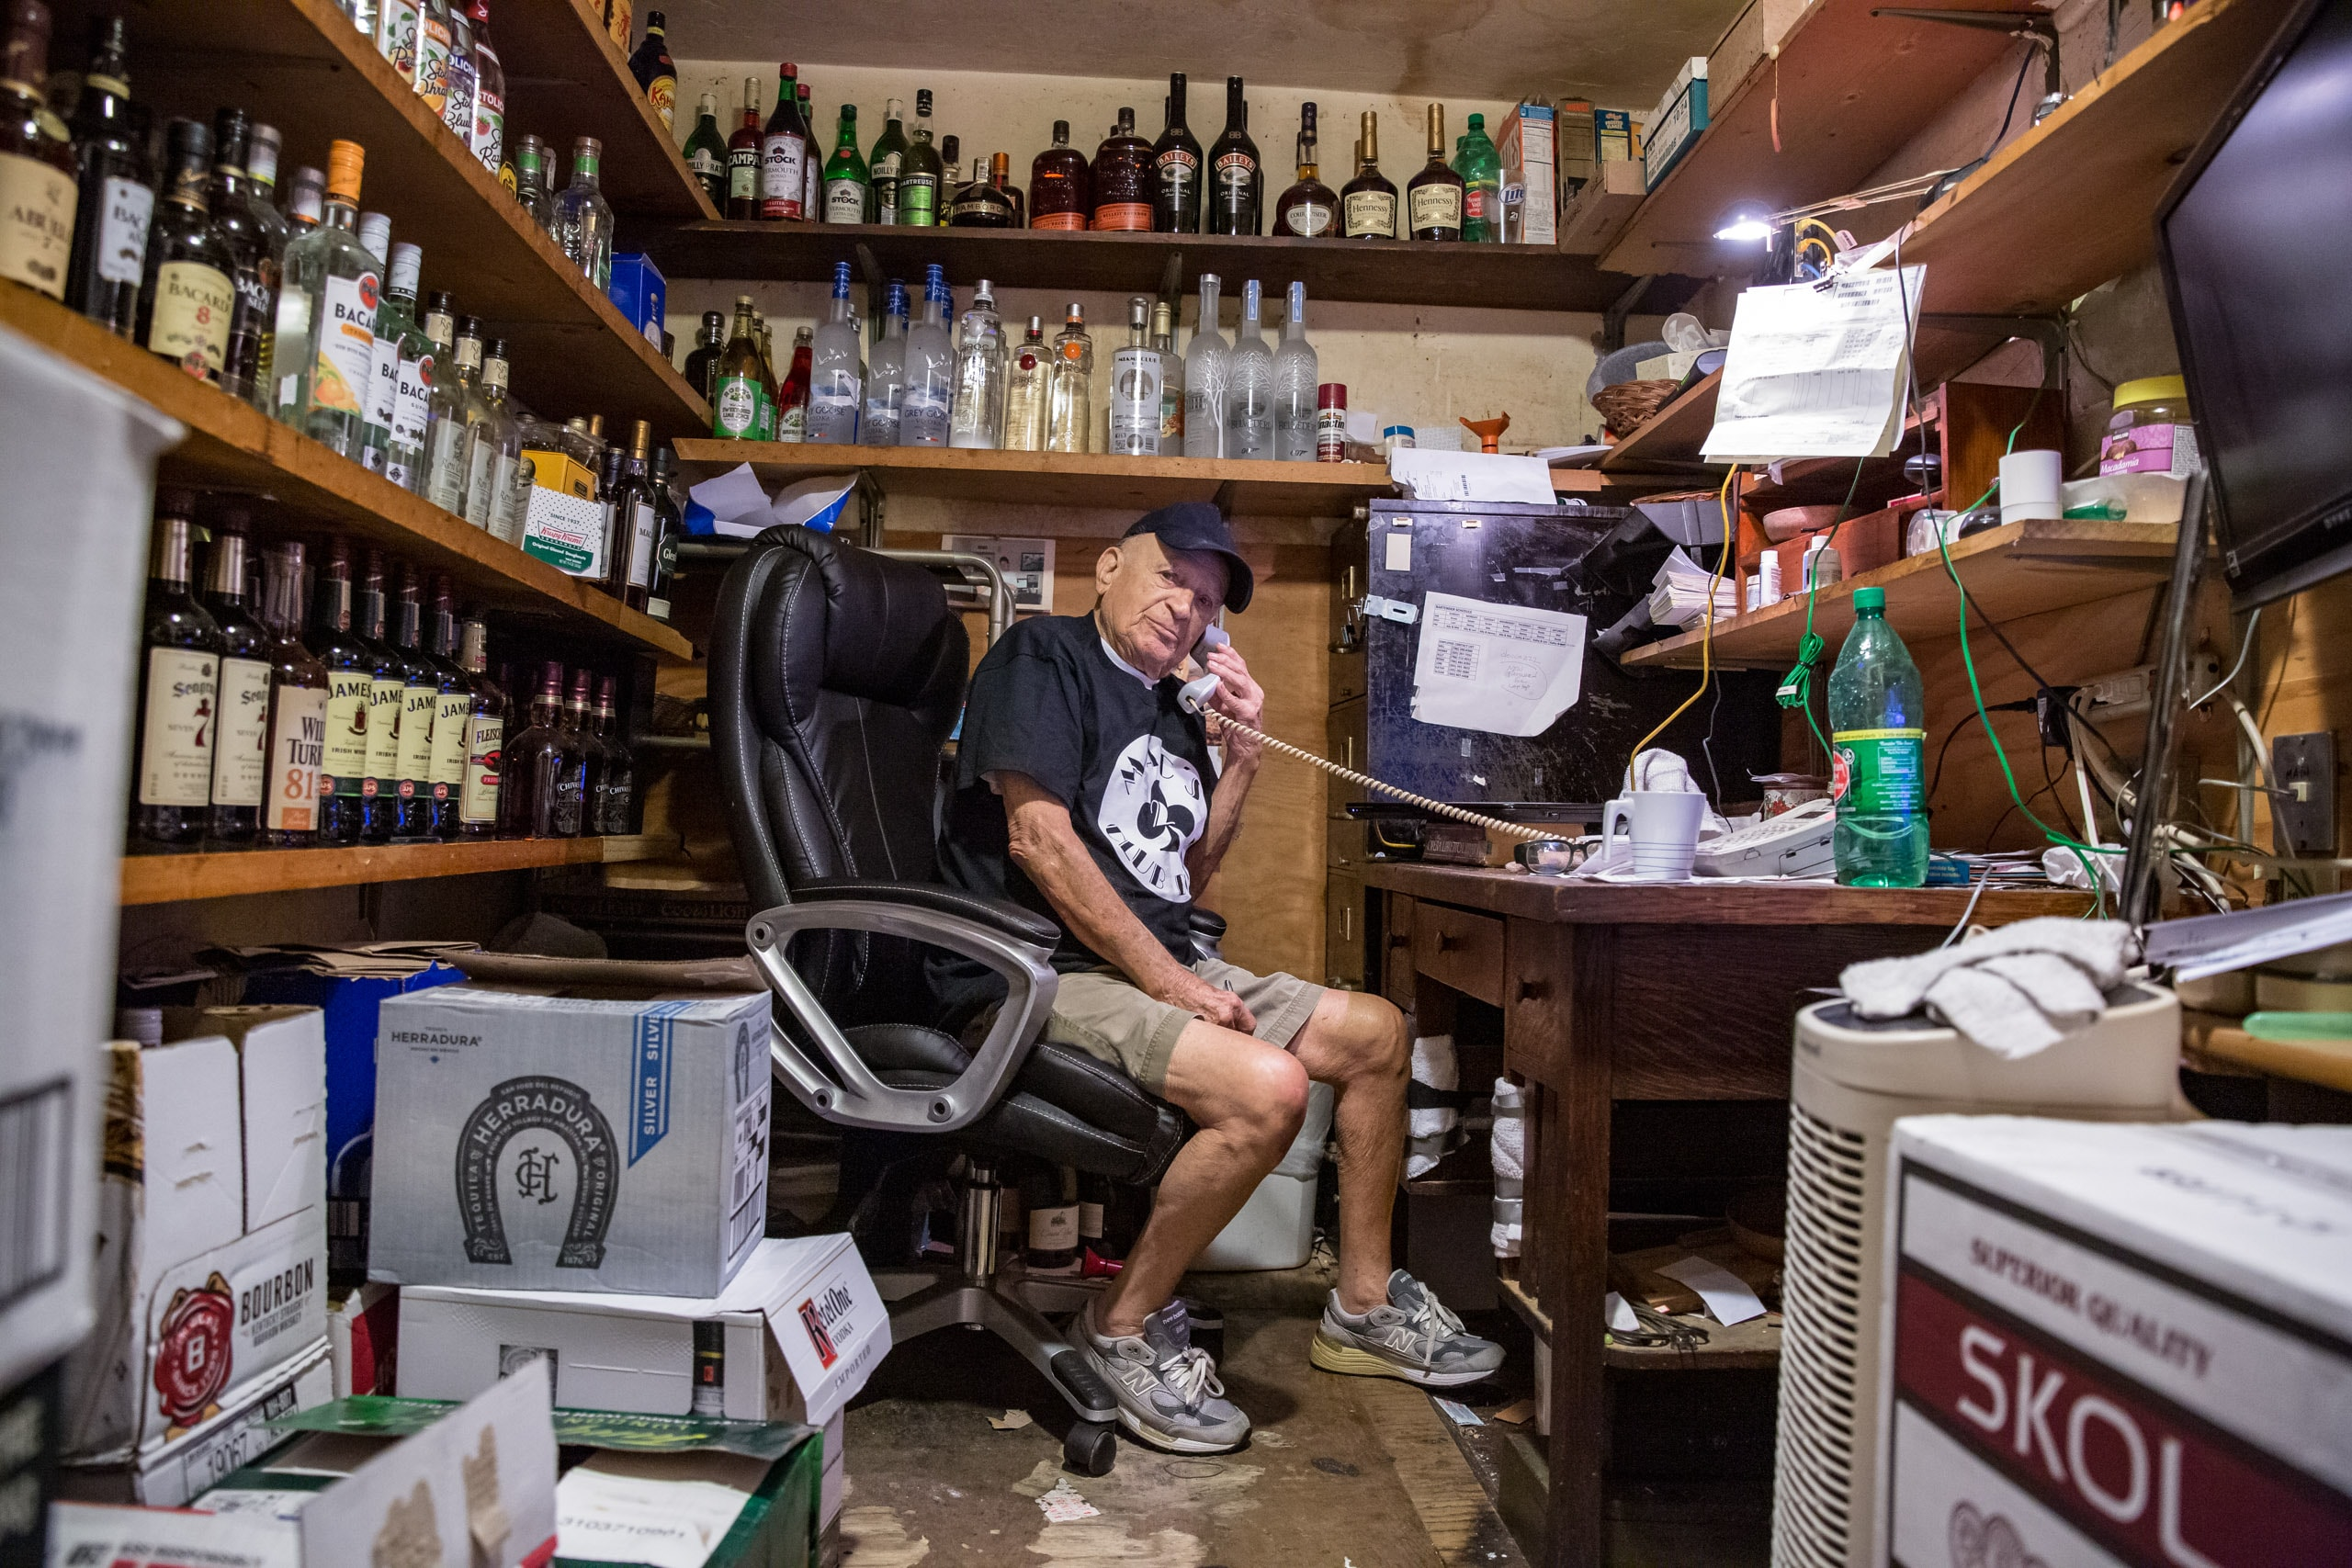 Wide shot into the storage room of a South Beach, Miami cocktail bar. This storage room is also the office of the 100 year old owner and operator of the bar. He is on the corded landline phone and looking dismisively into the camera lens. This photograph is part of the To Live 10,000 Years series by Danny Goldfield.